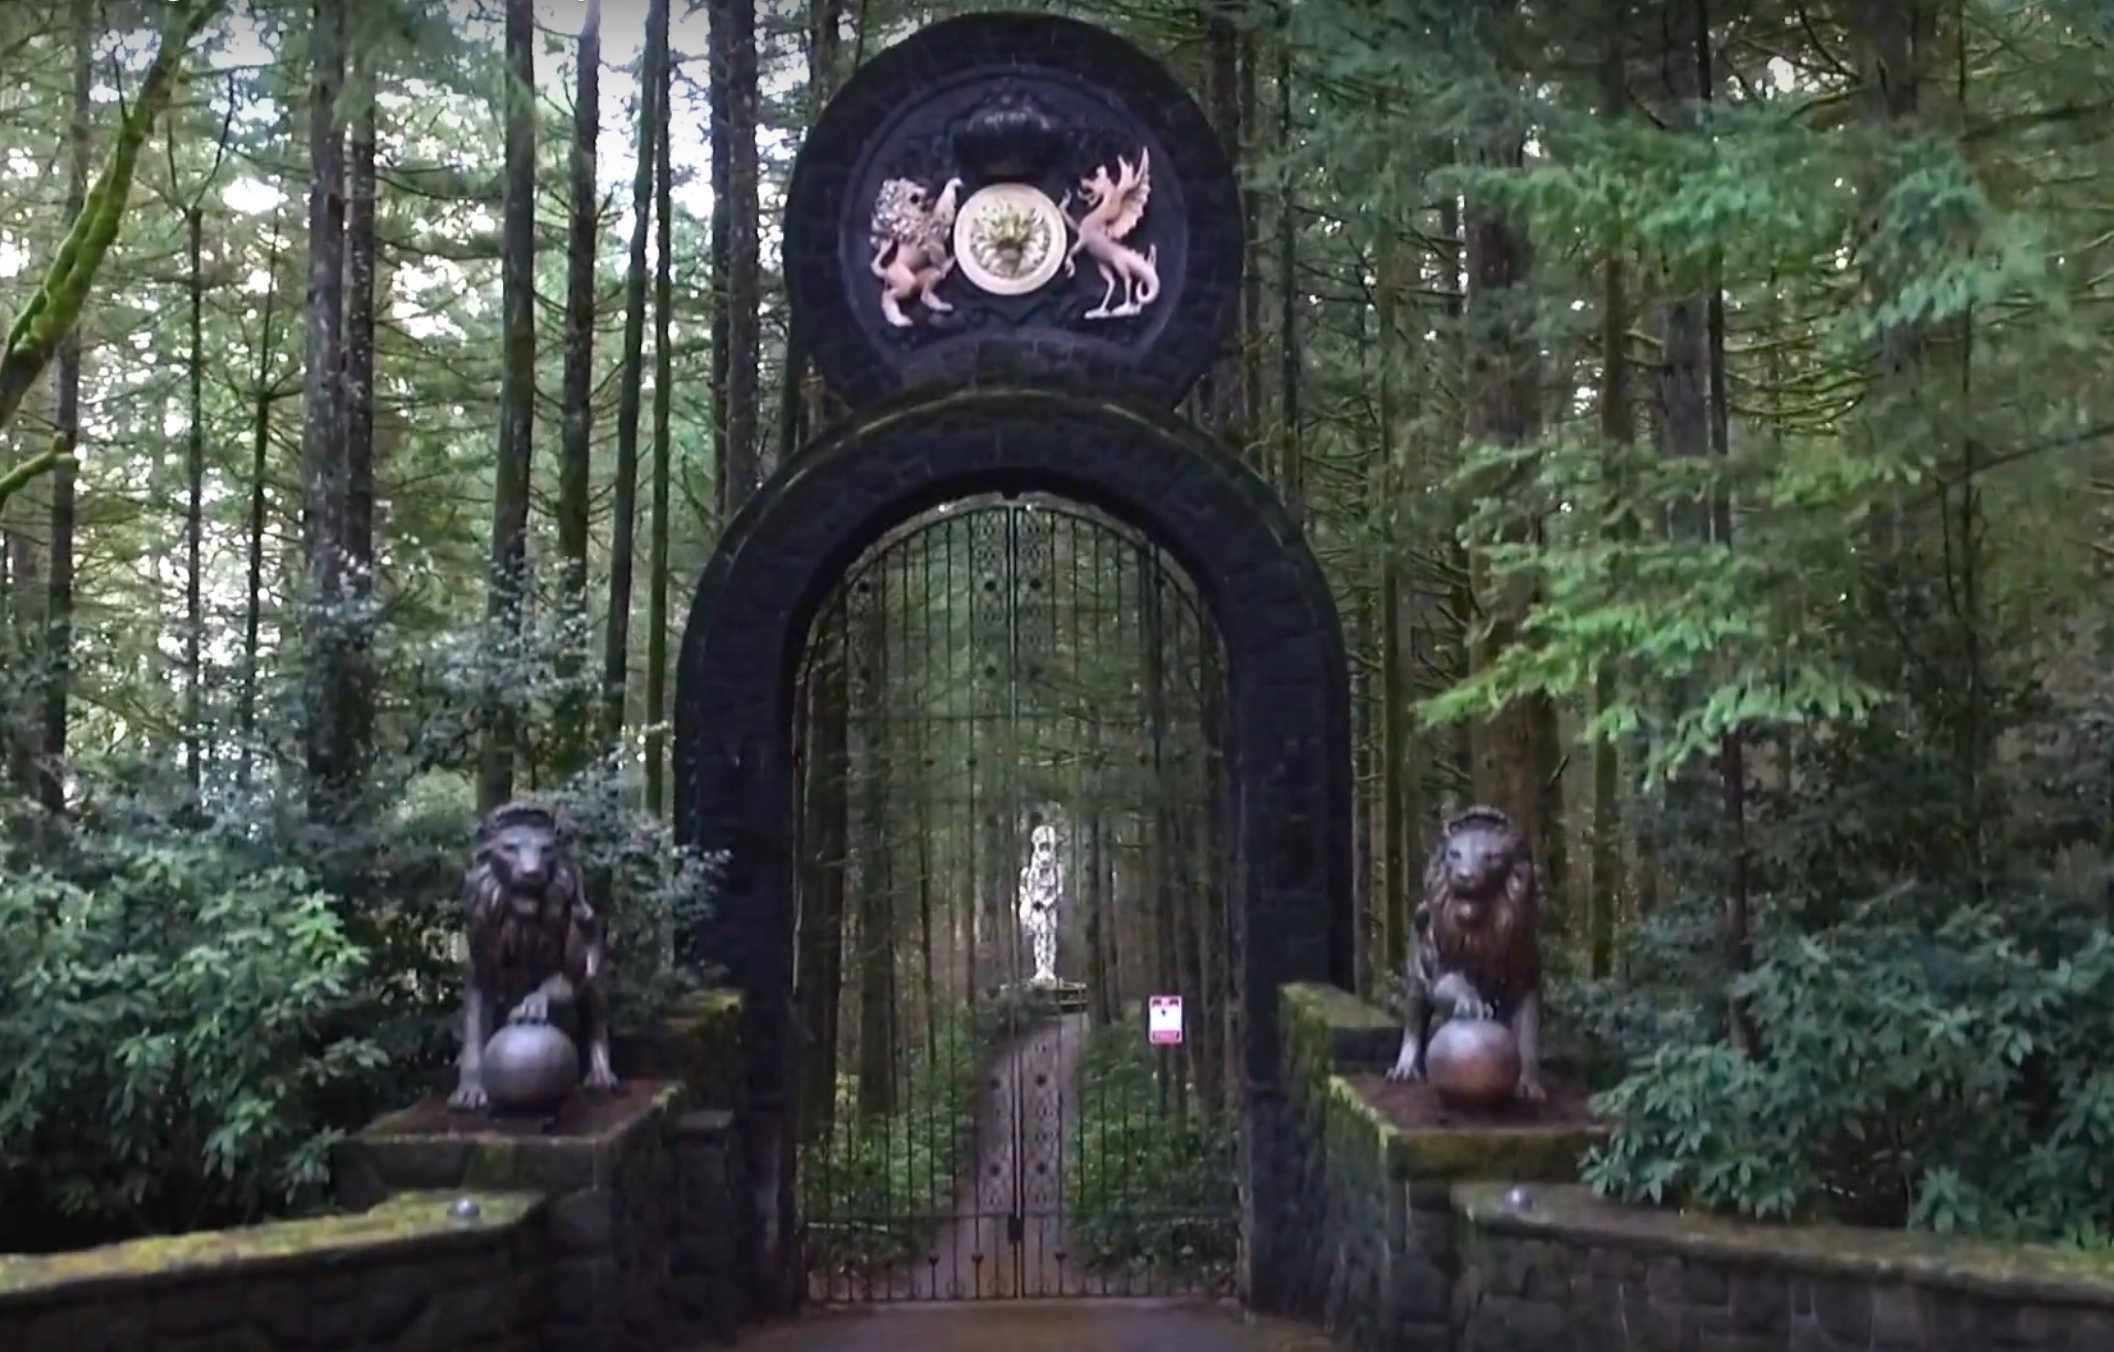 Oculus Anubis The Mysterious Temple In Oregon That Is